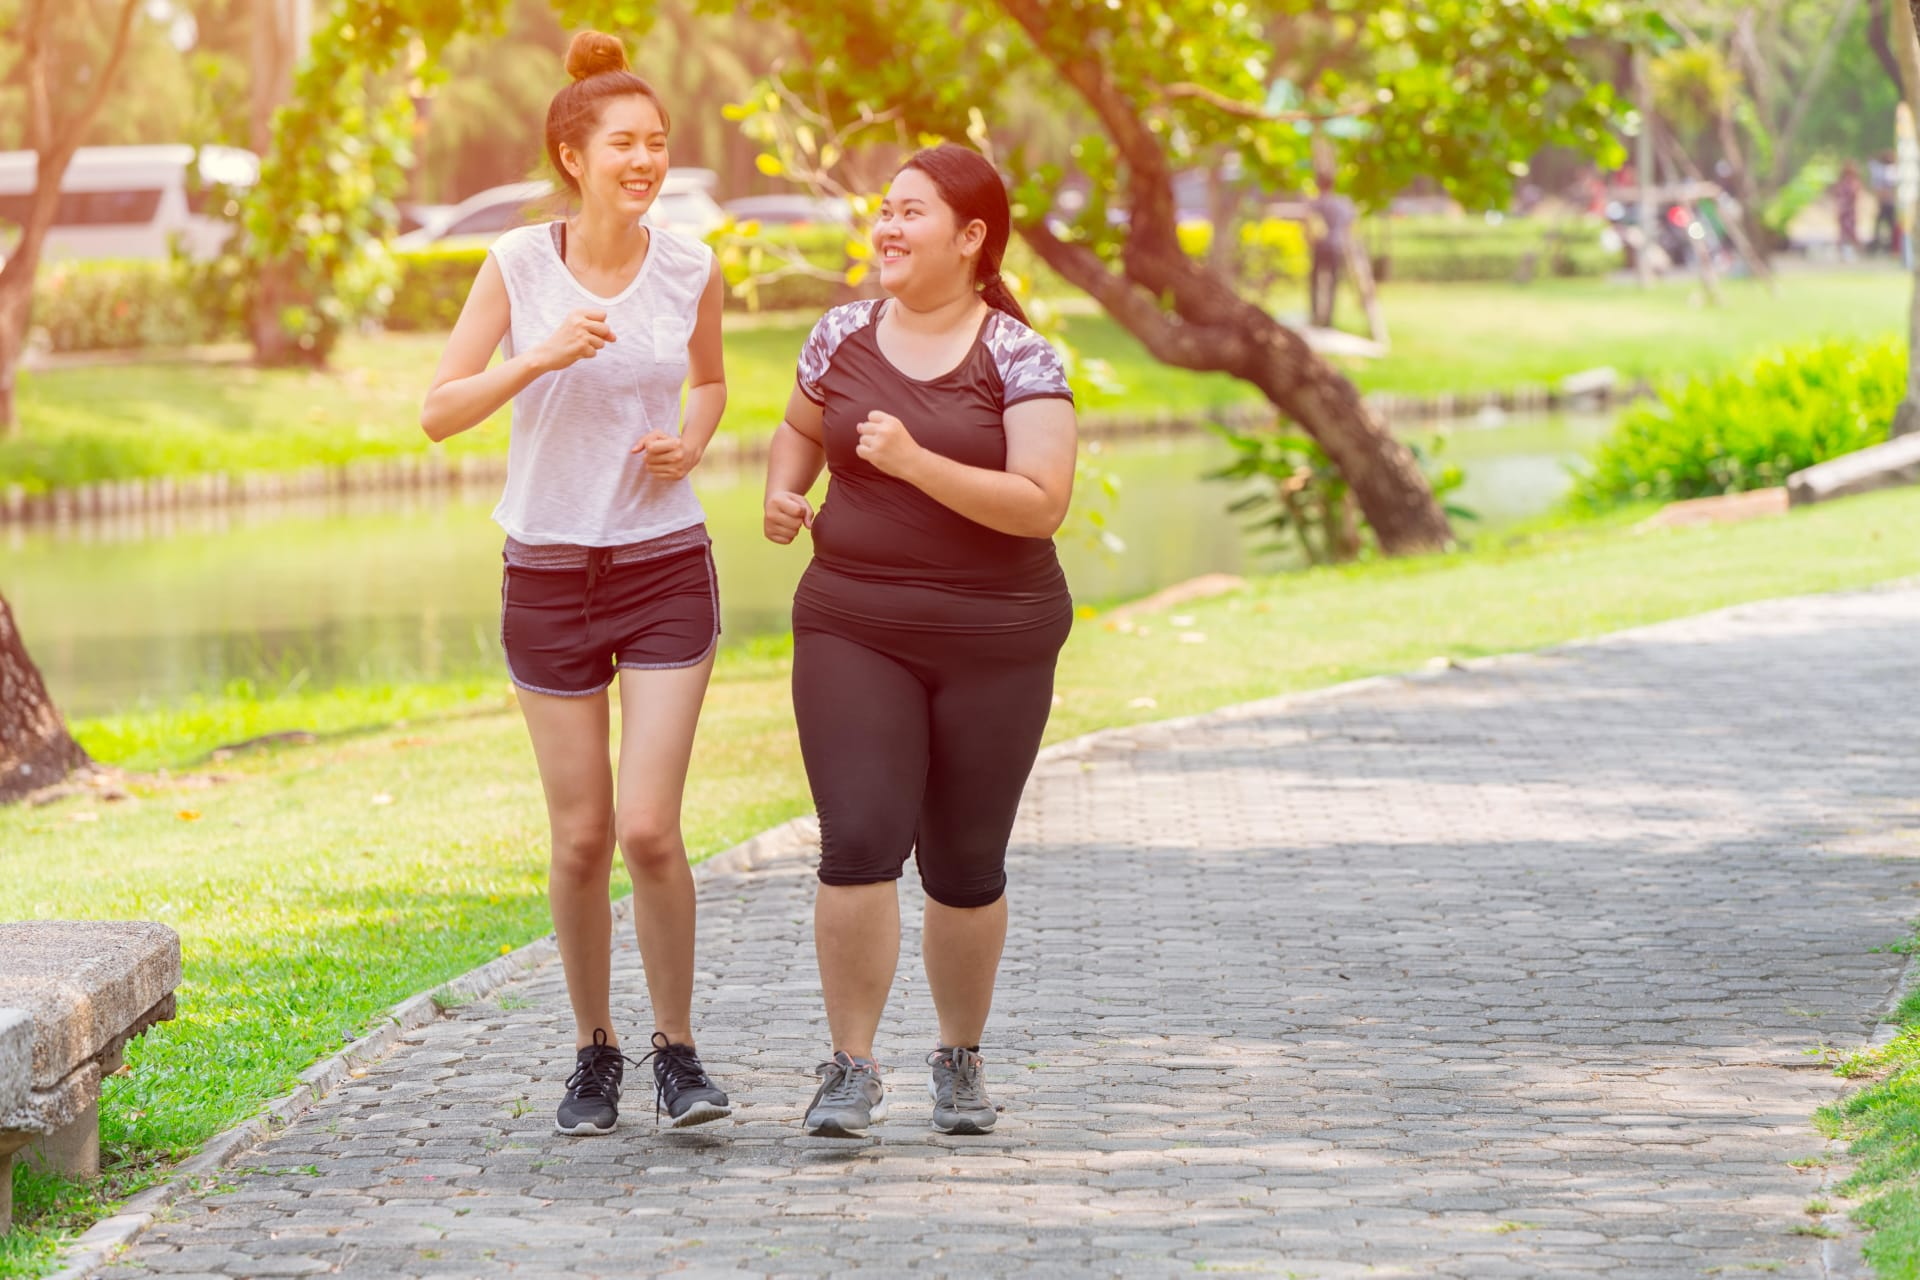 Two girls running in the park